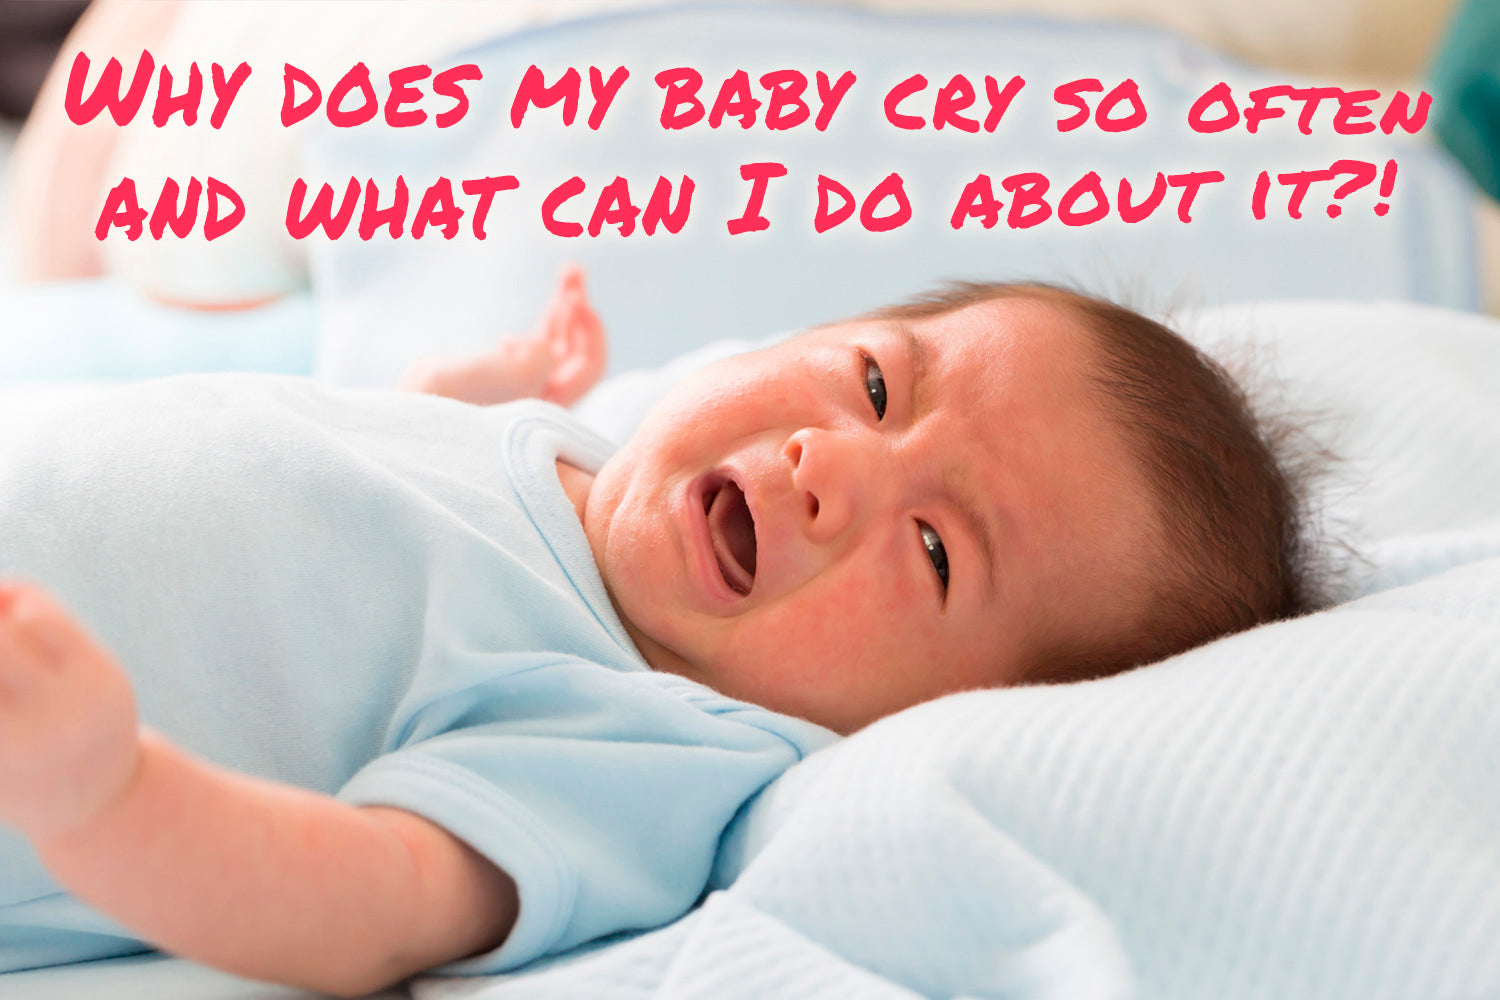 Why does my baby cry so often and what can I do about it?!